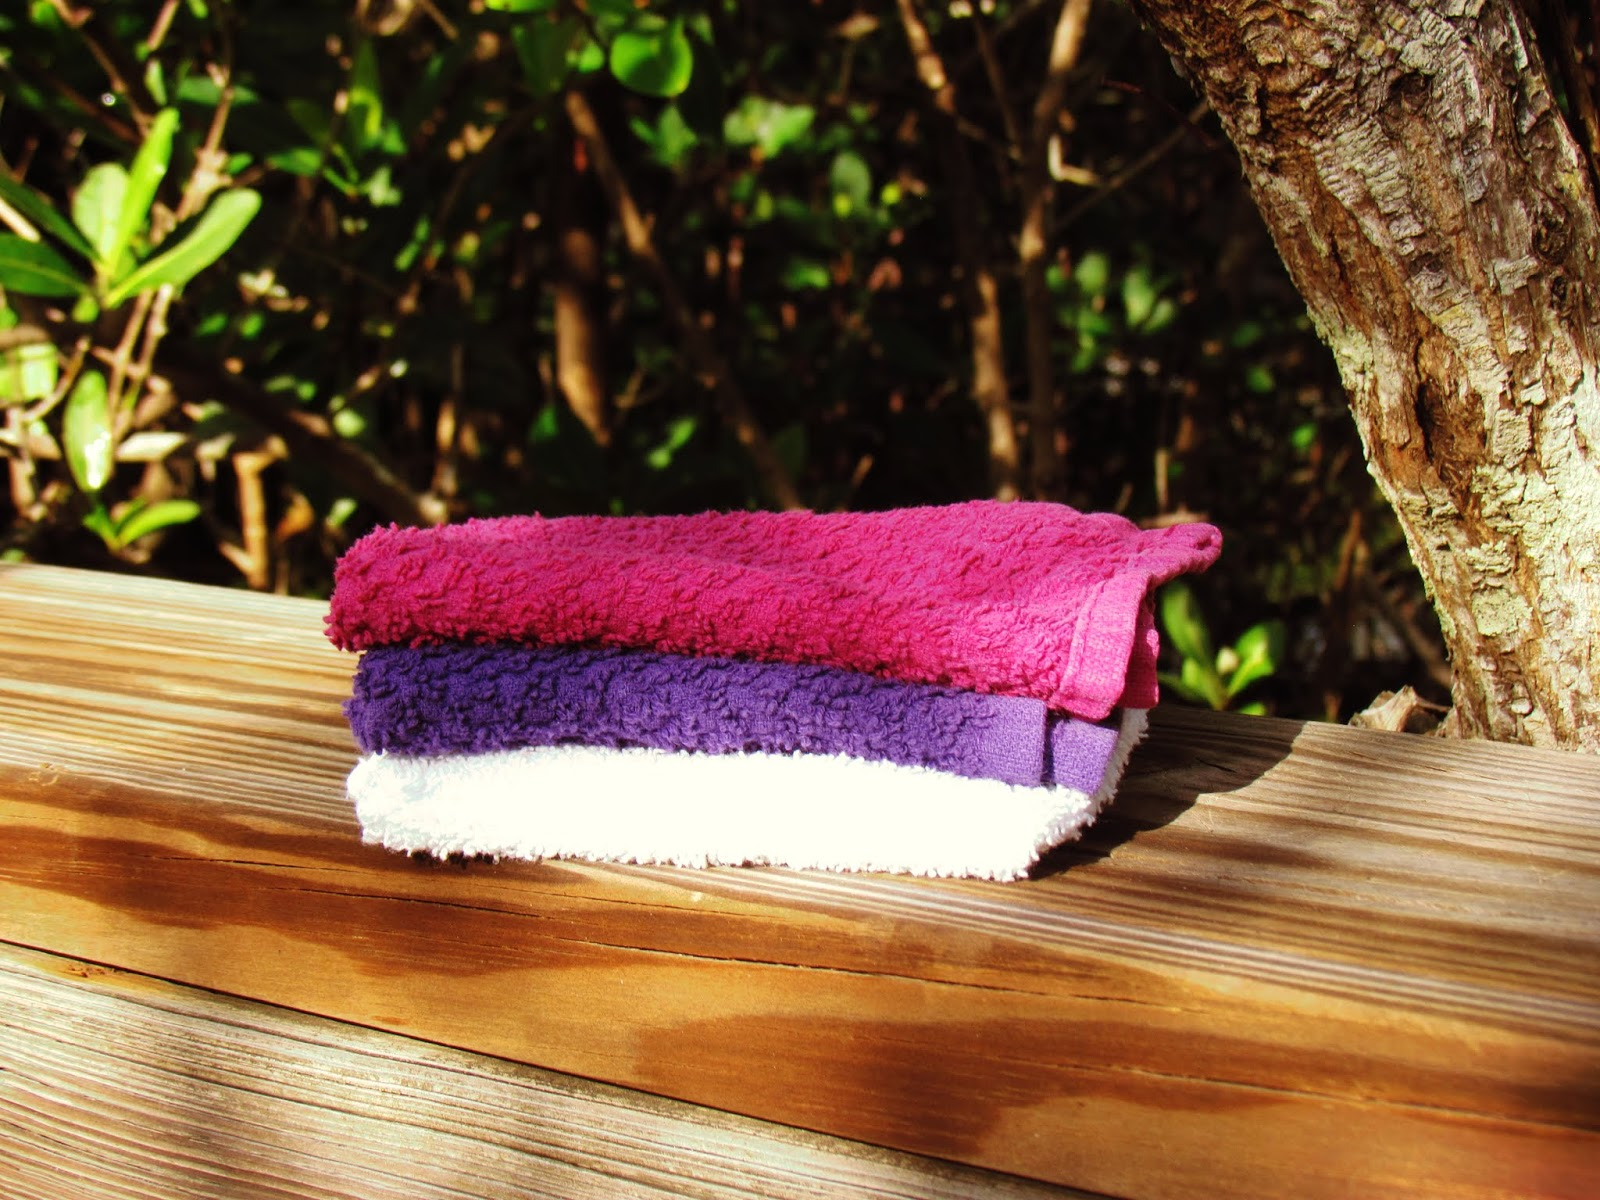 Colorful washcloths in a Florida boardwalk in the trees zero-waste and eco-friendly